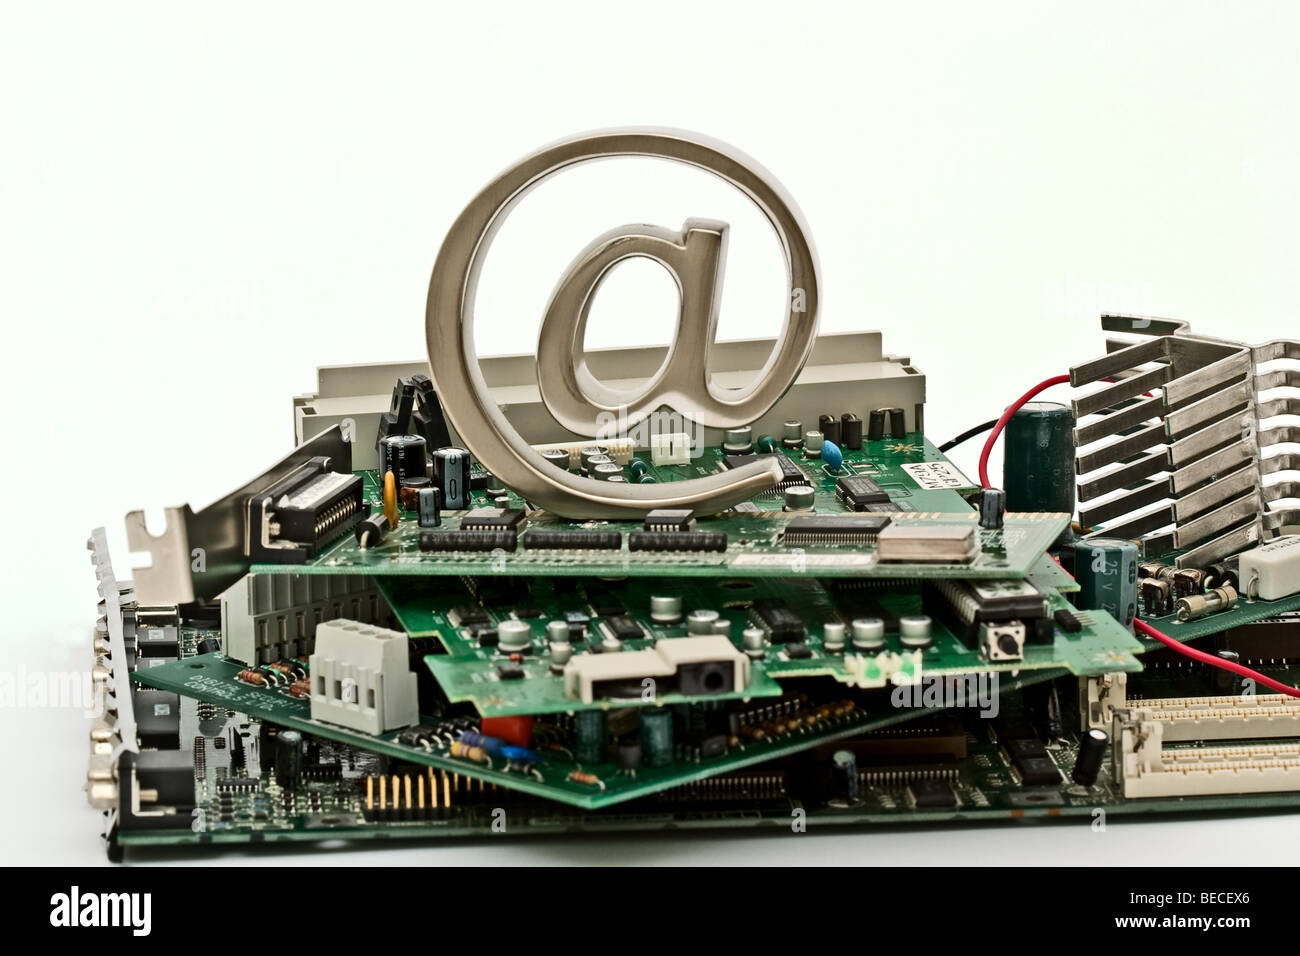 Boards E Stock Photos & Boards E Stock Images - Alamy